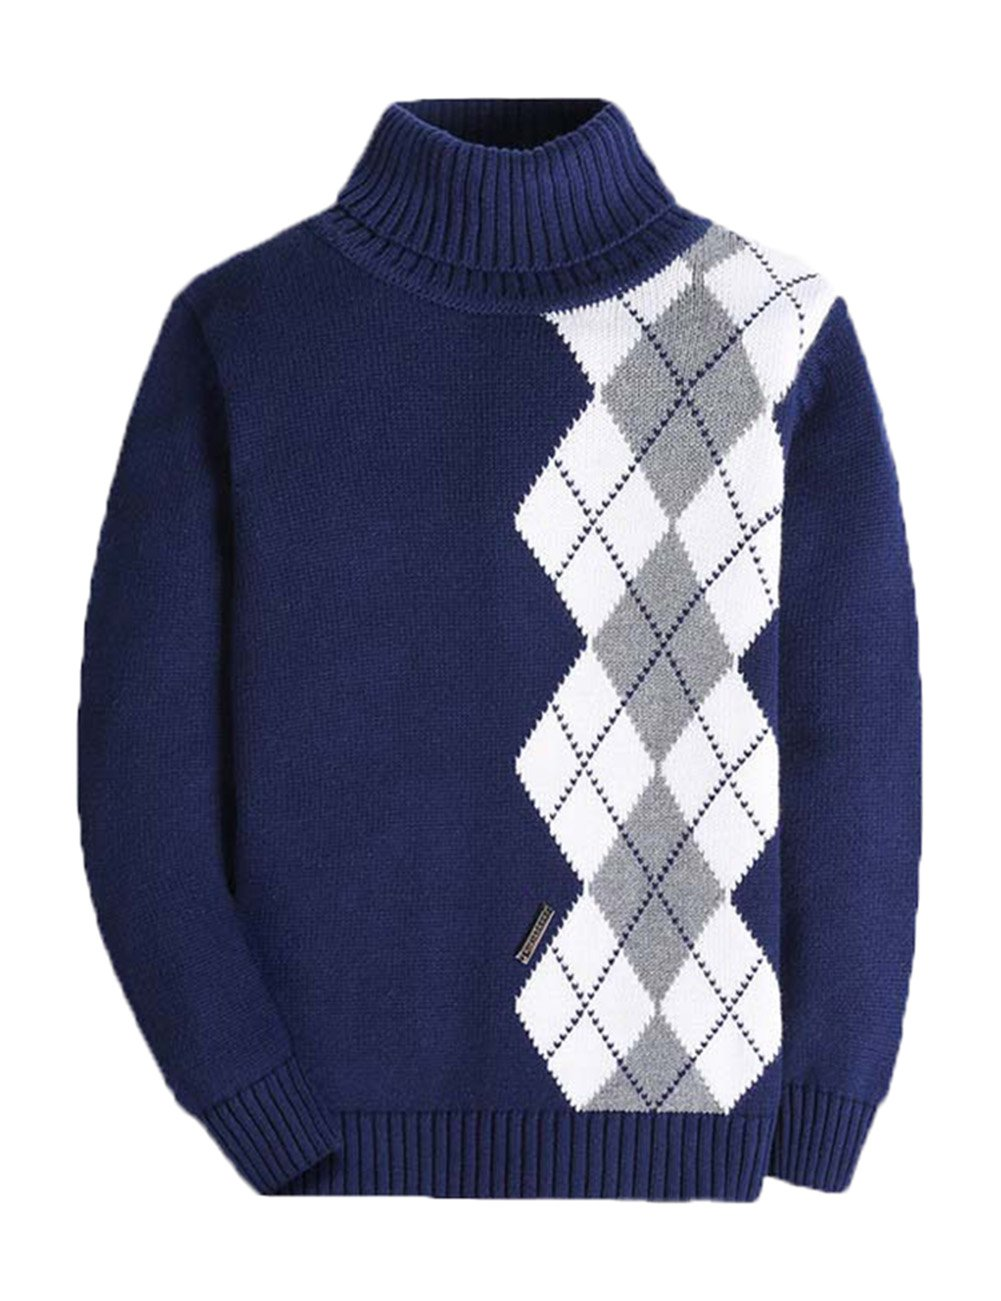 BASADINA Boys Long Sleeve Sweater Turtleneck Pullover Argyle Uniform Plaid Kids Clothes